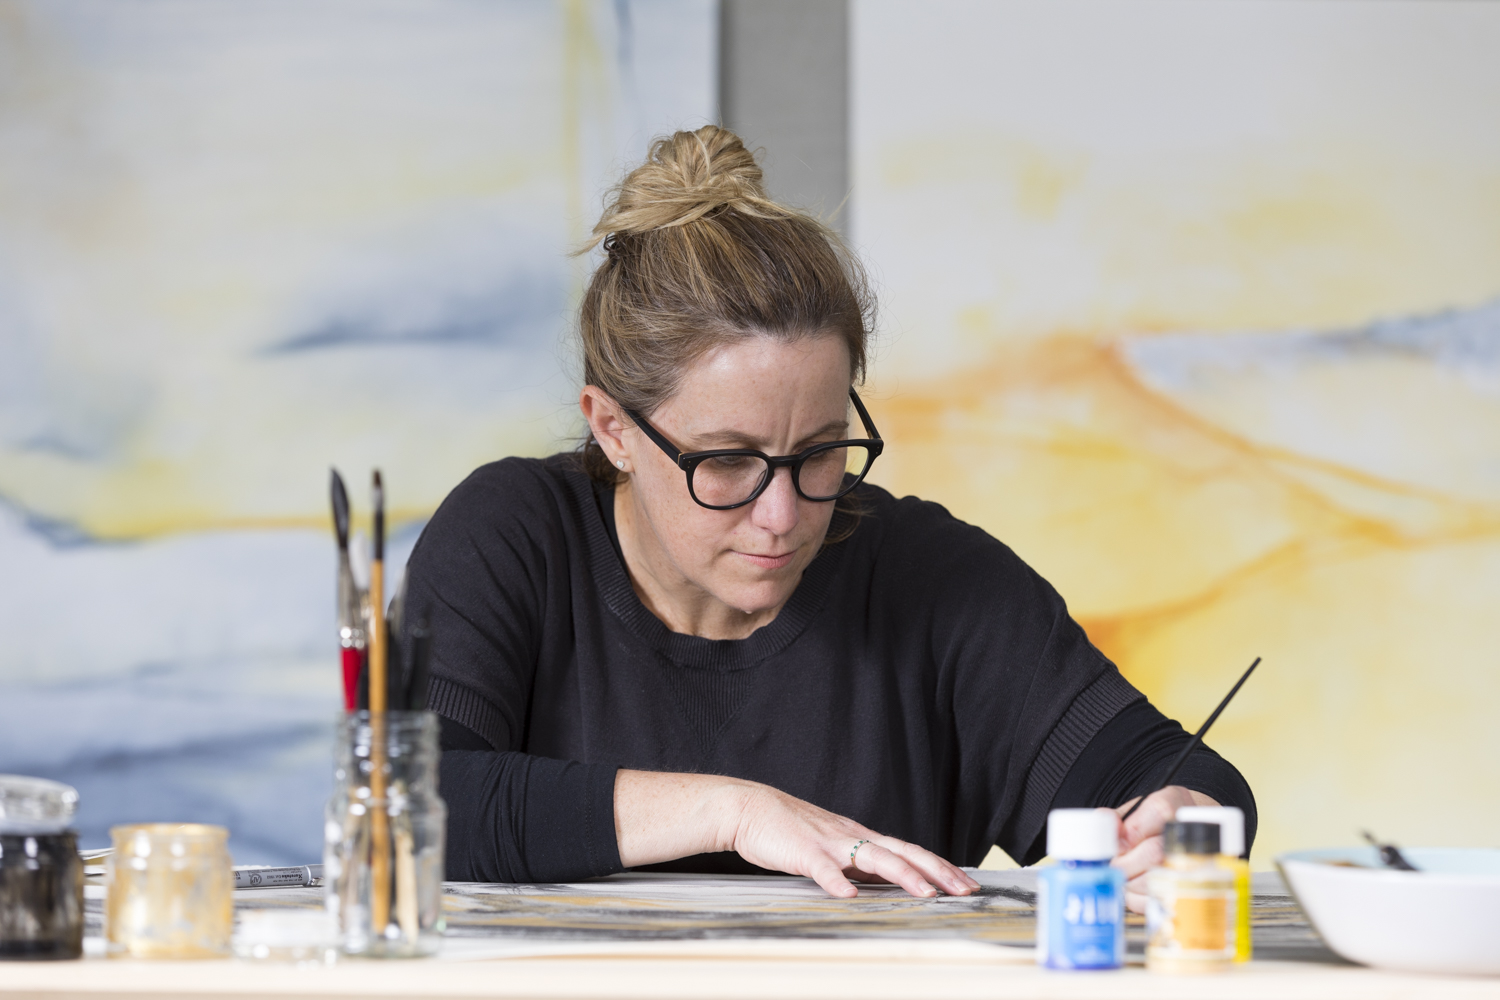 Artist-Kylie-Fogarty-working-in-the-Studio-Image-Credit-AHC-Studios.jpg